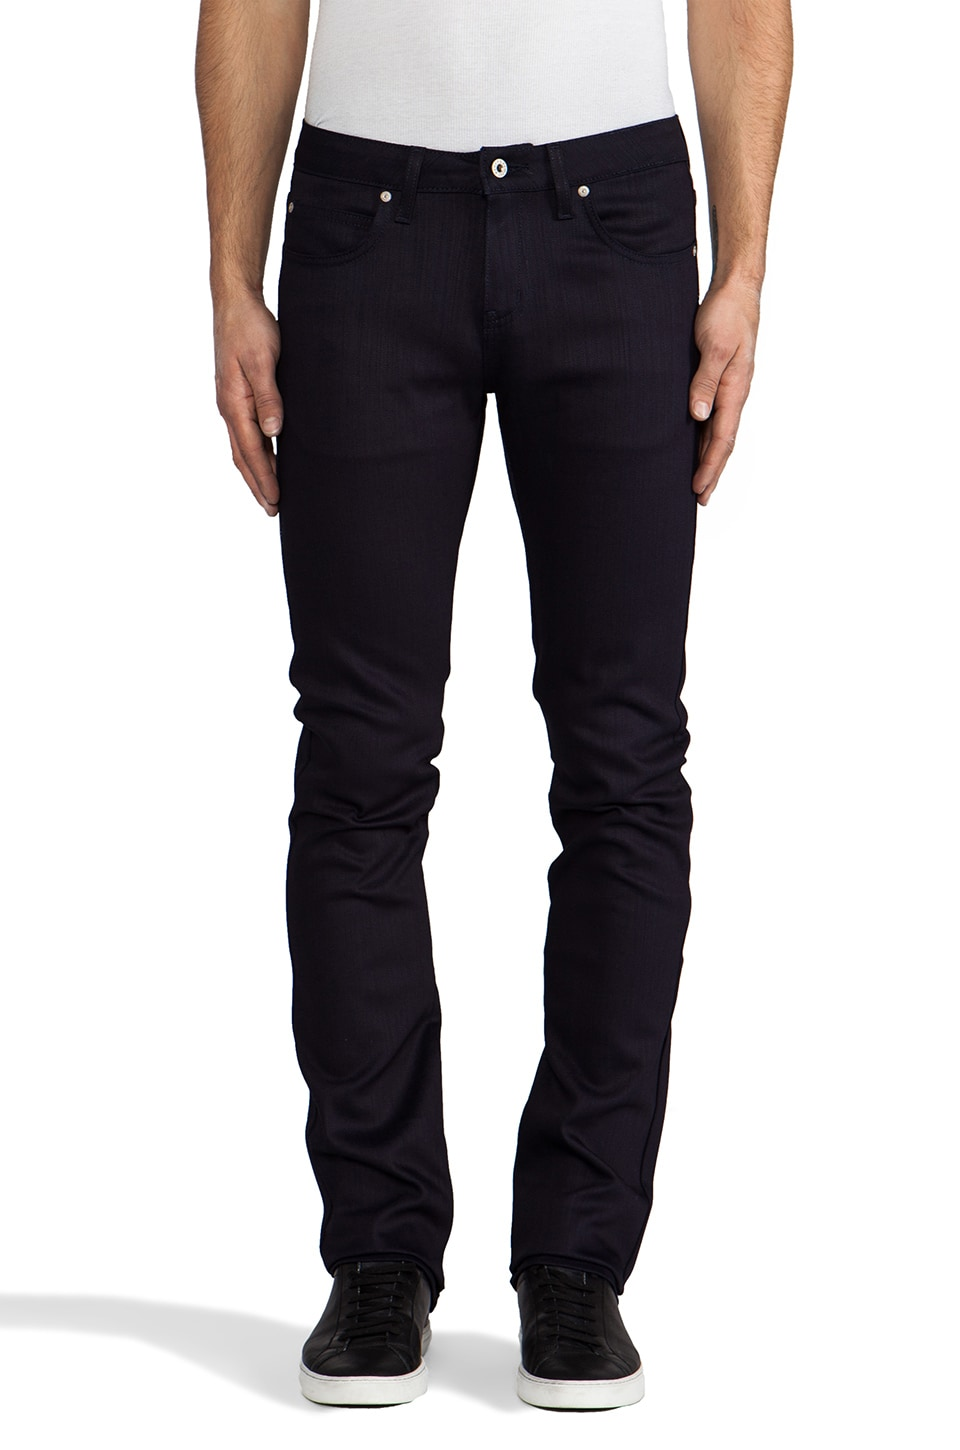 Naked & Famous Denim Skinny Guy Midnight Power Stretch 12 oz. in Indigo/Black